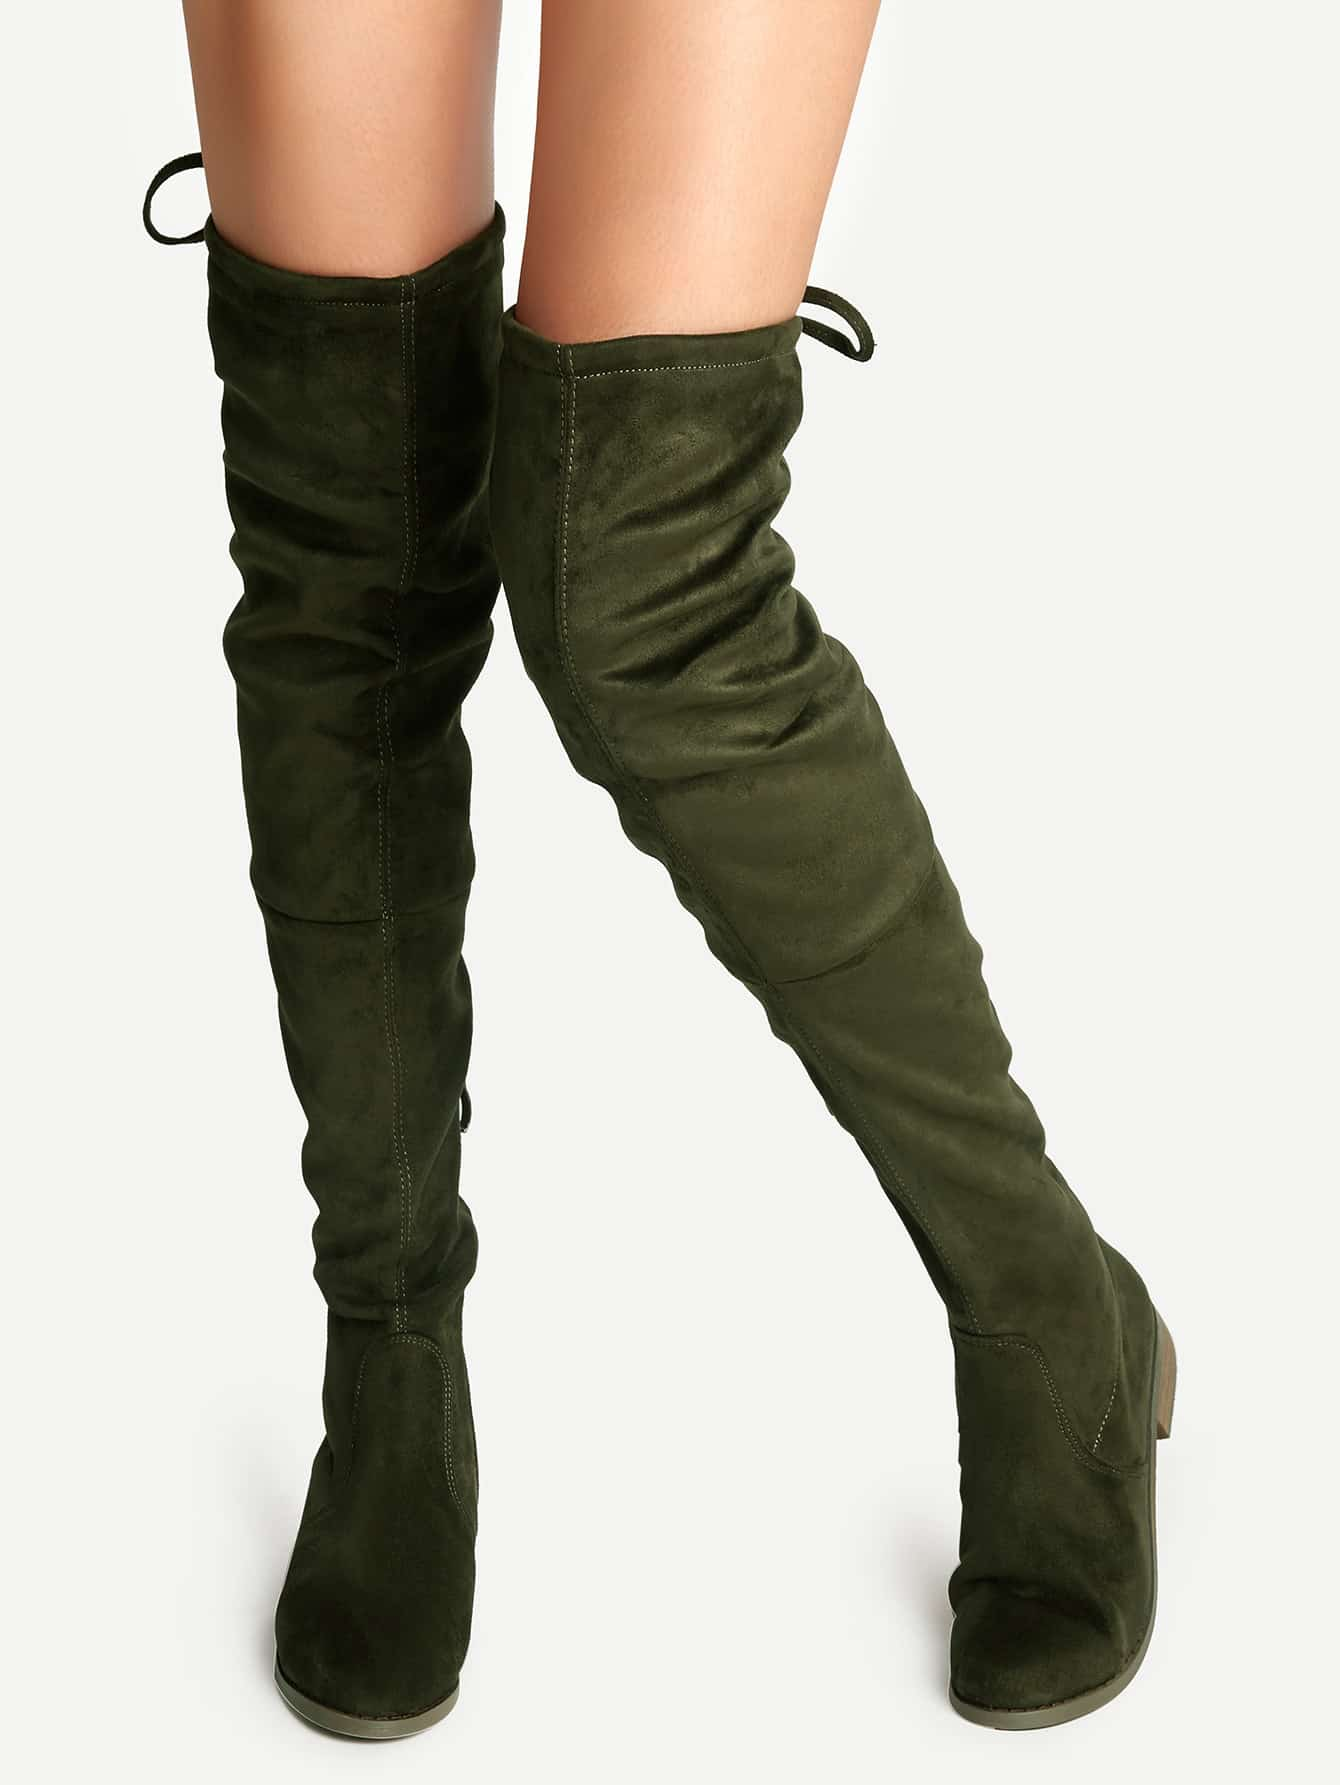 2d203536be54 Olive Green Suede Lace Up Over The Knee Boots | SHEIN UK